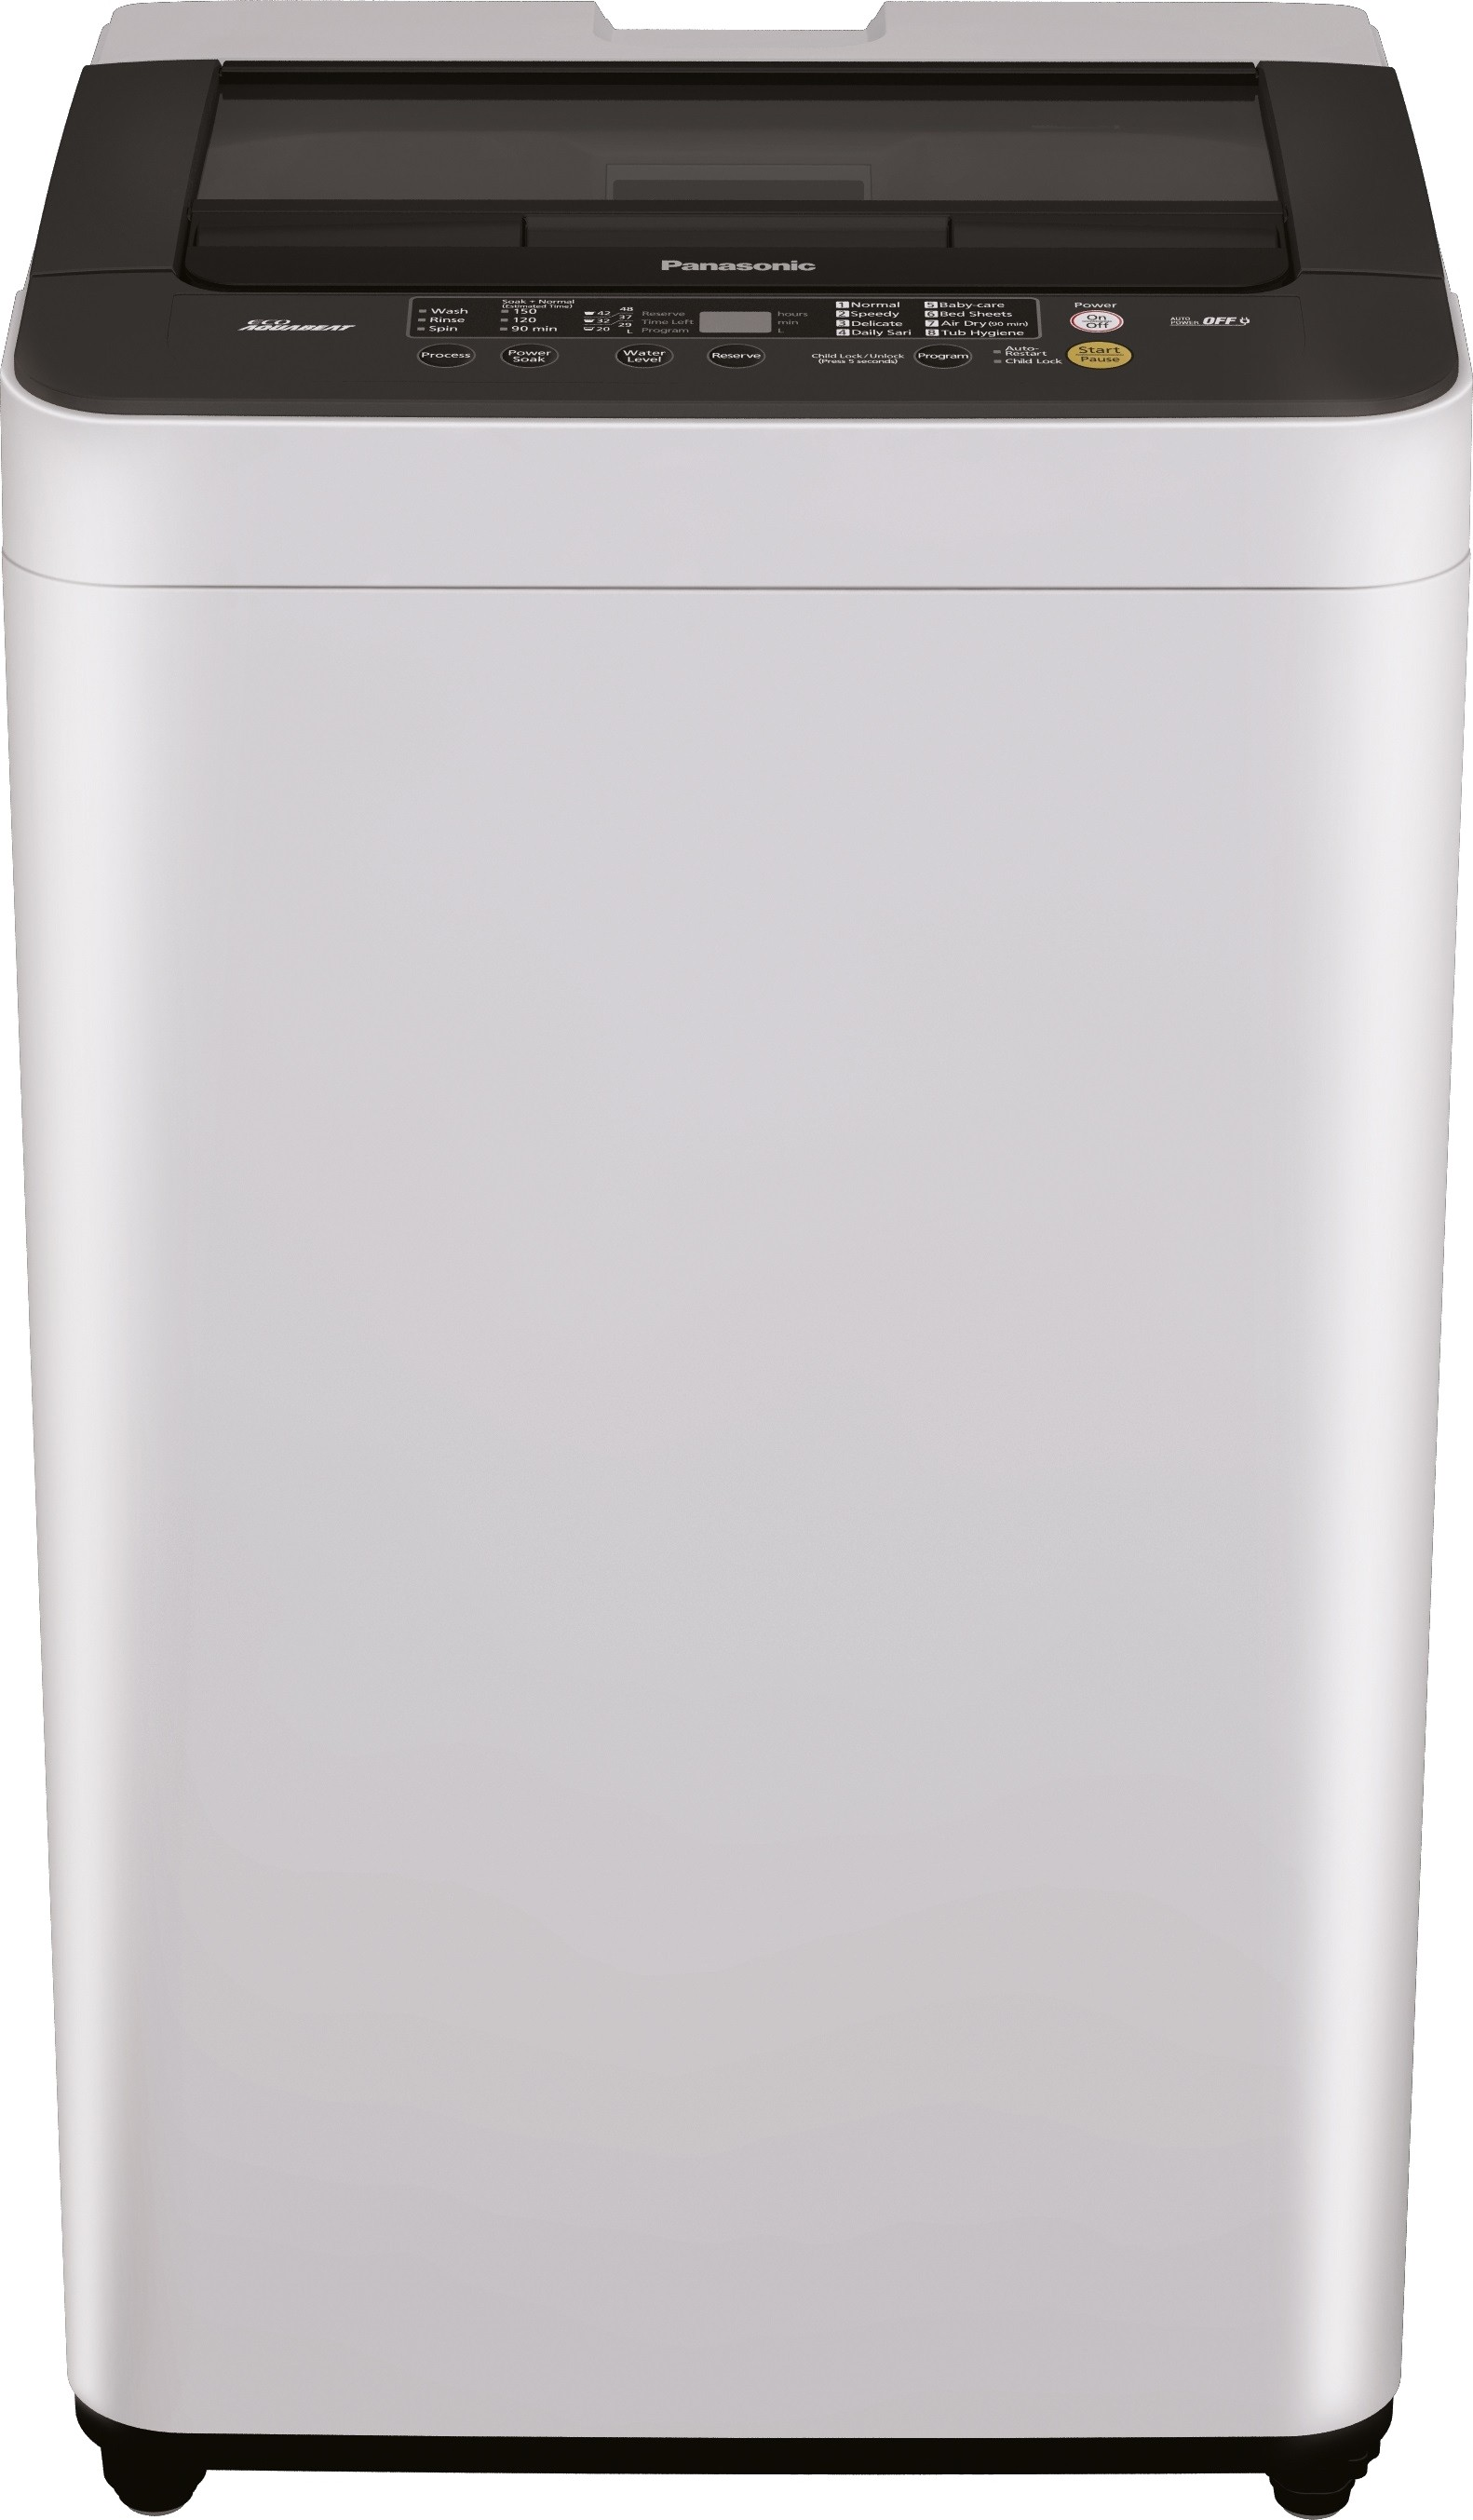 PANASONIC NA-F70B3HRB 7KG Fully Automatic Top Load Washing Machine